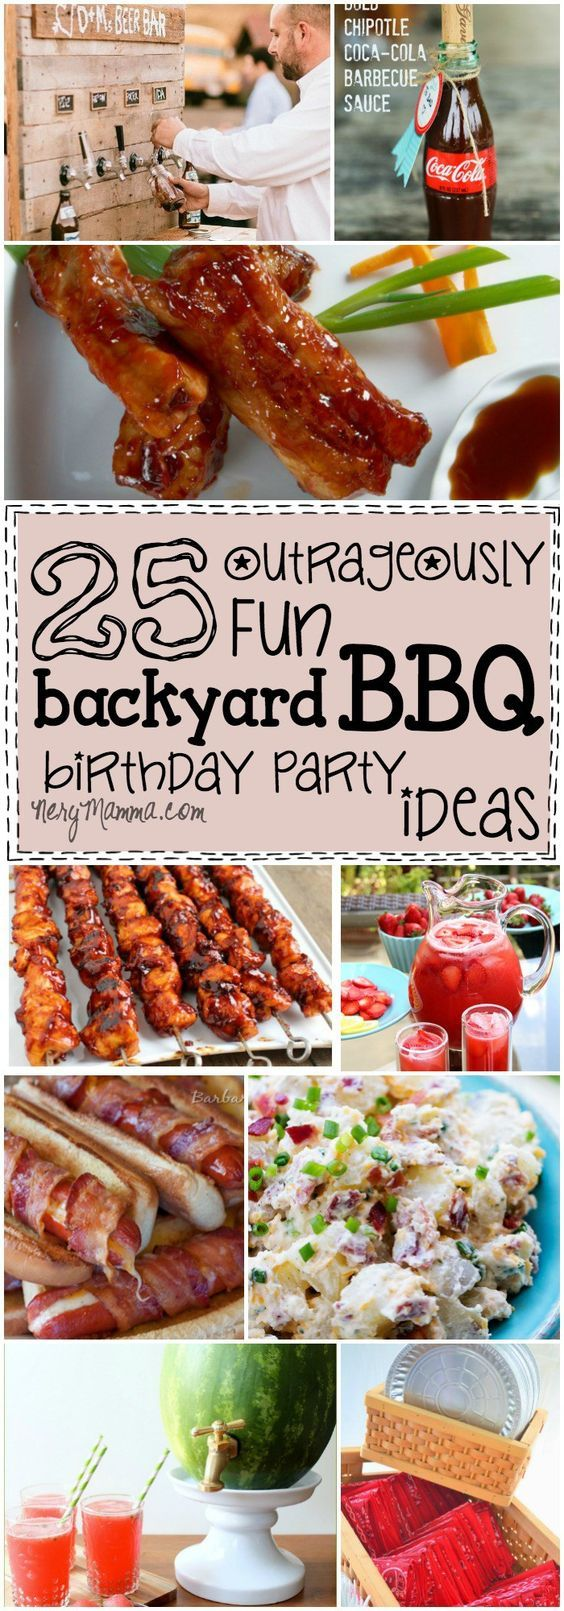 best 25 backyard bbq ideas on pinterest bbq decorations bbq